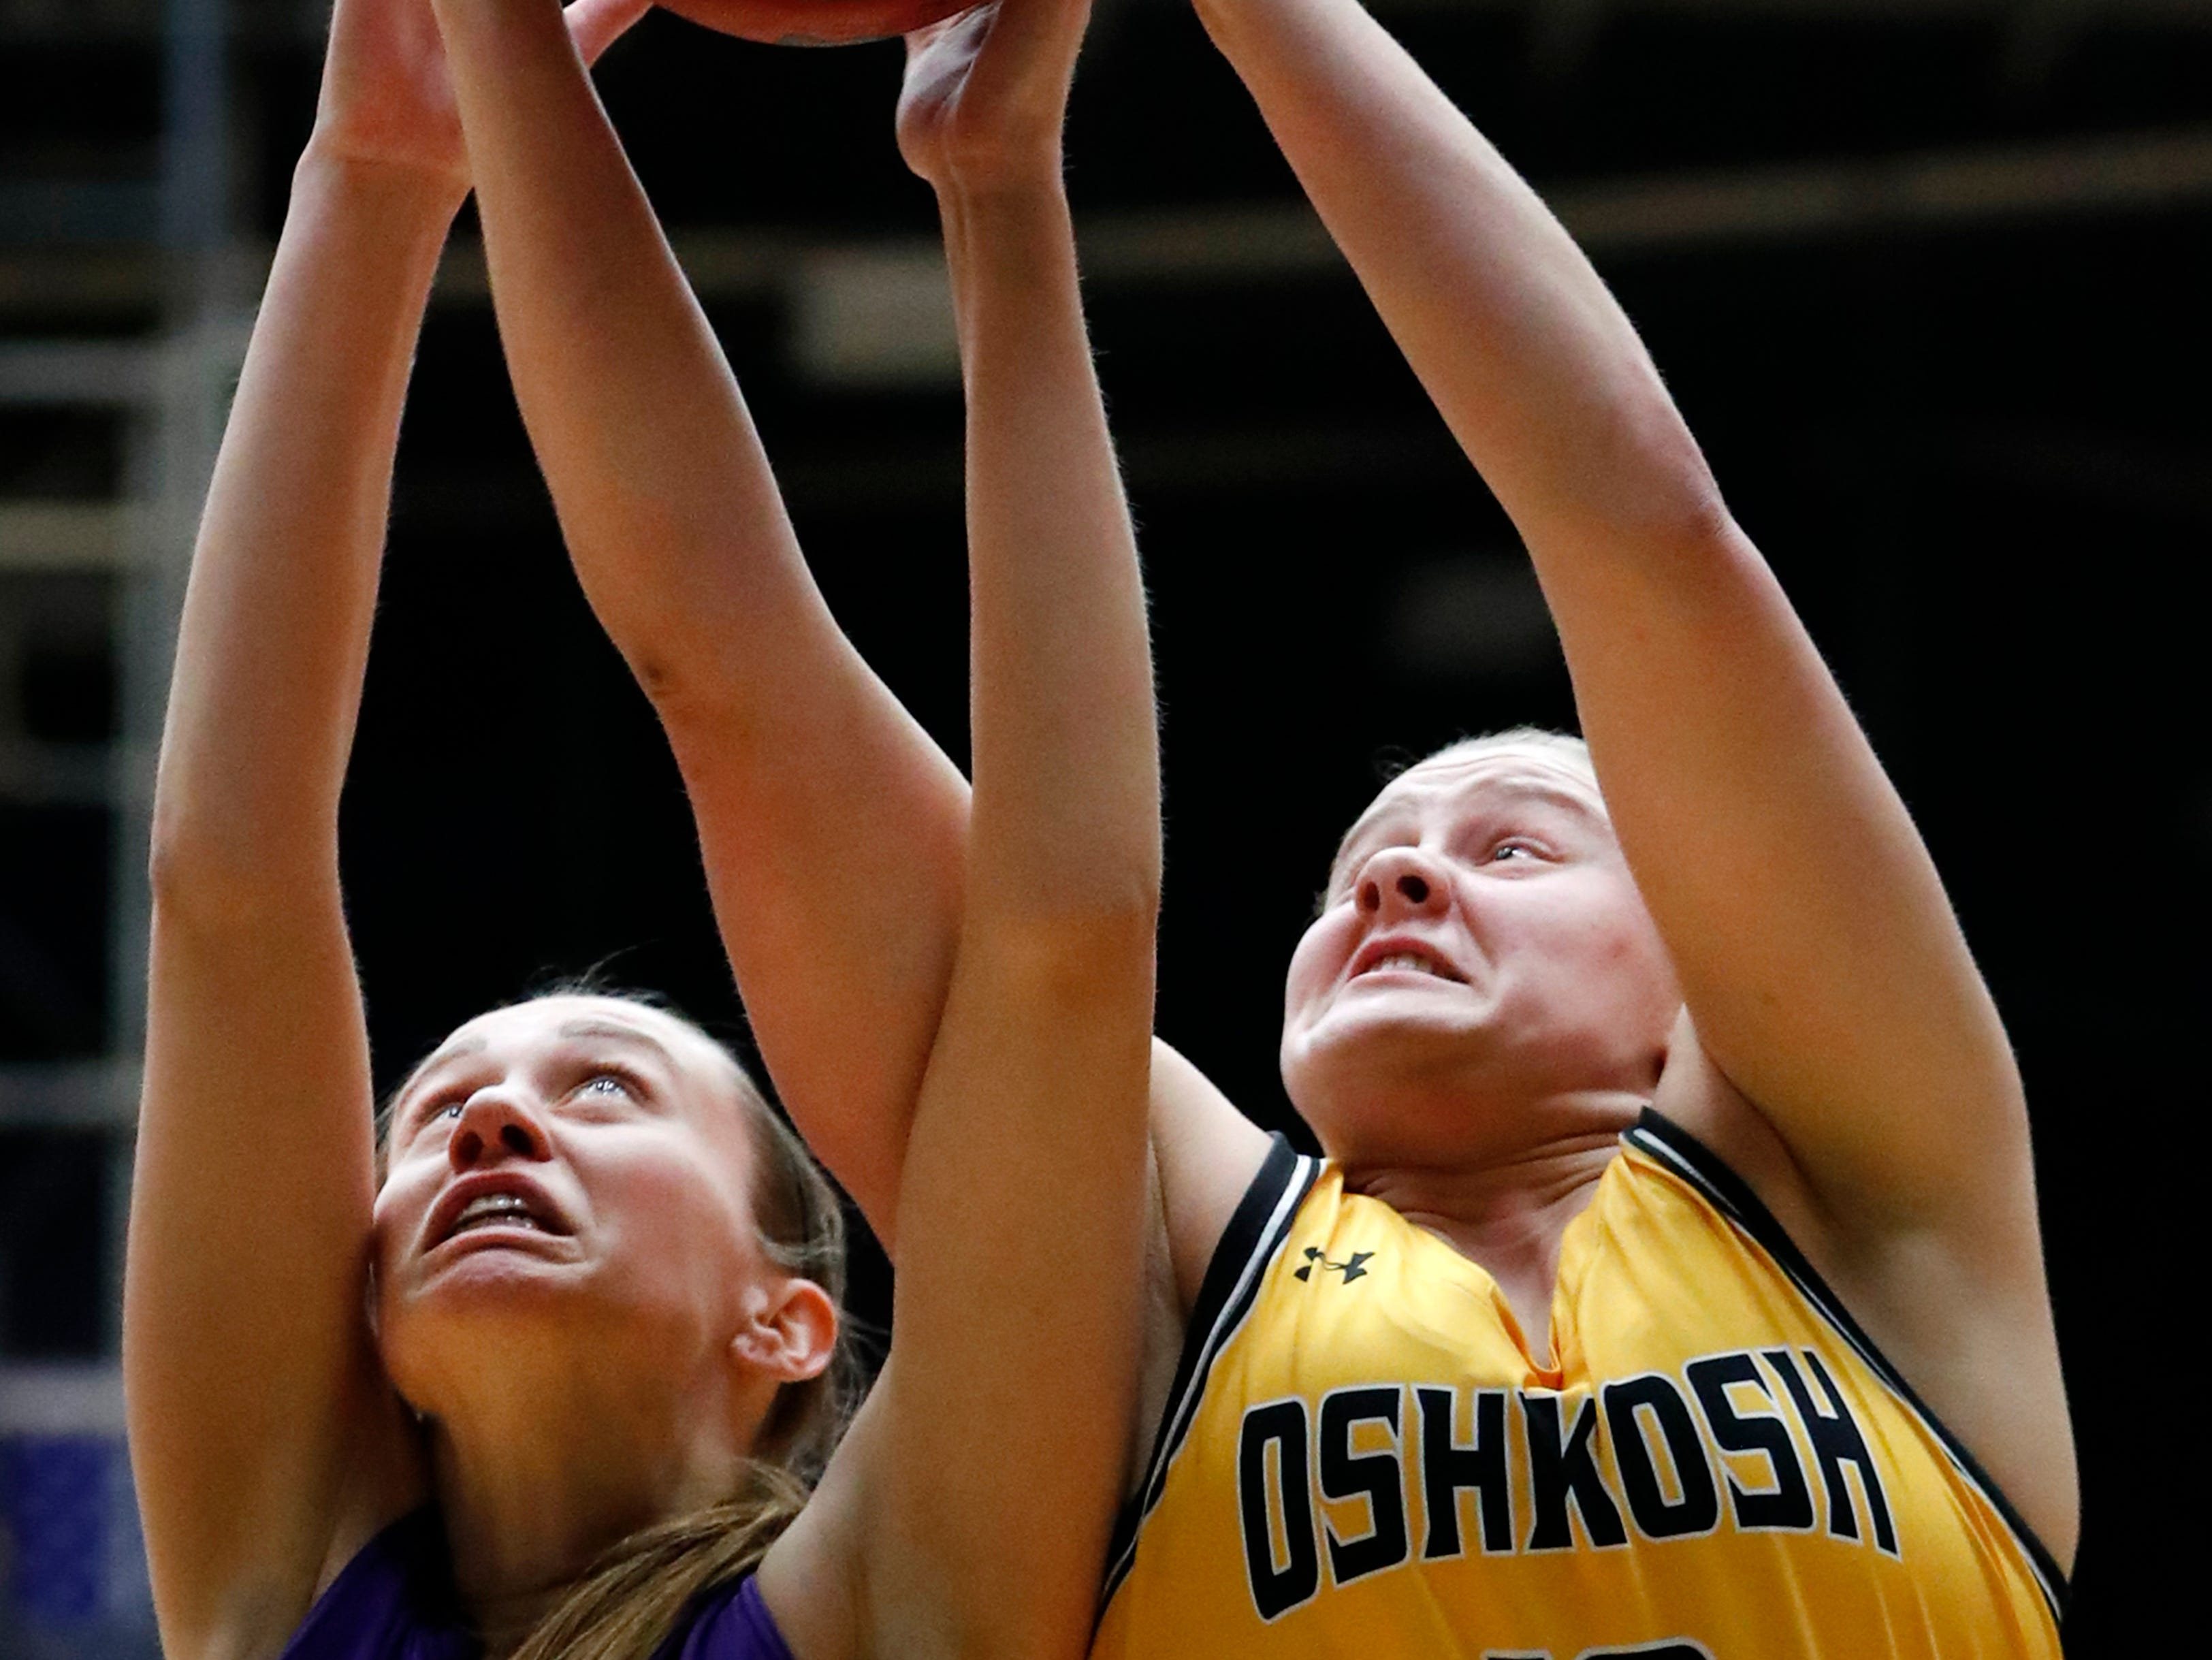 UW-WhitewaterÕs Megan Corcoran (20) fights for control of a rebound with UW-OshkoshÕs Leah Porath (12) during the WIAC Championship final Sunday, Feb. 24, 2019, at the Kolf Sports Center in Oshkosh, Wis.